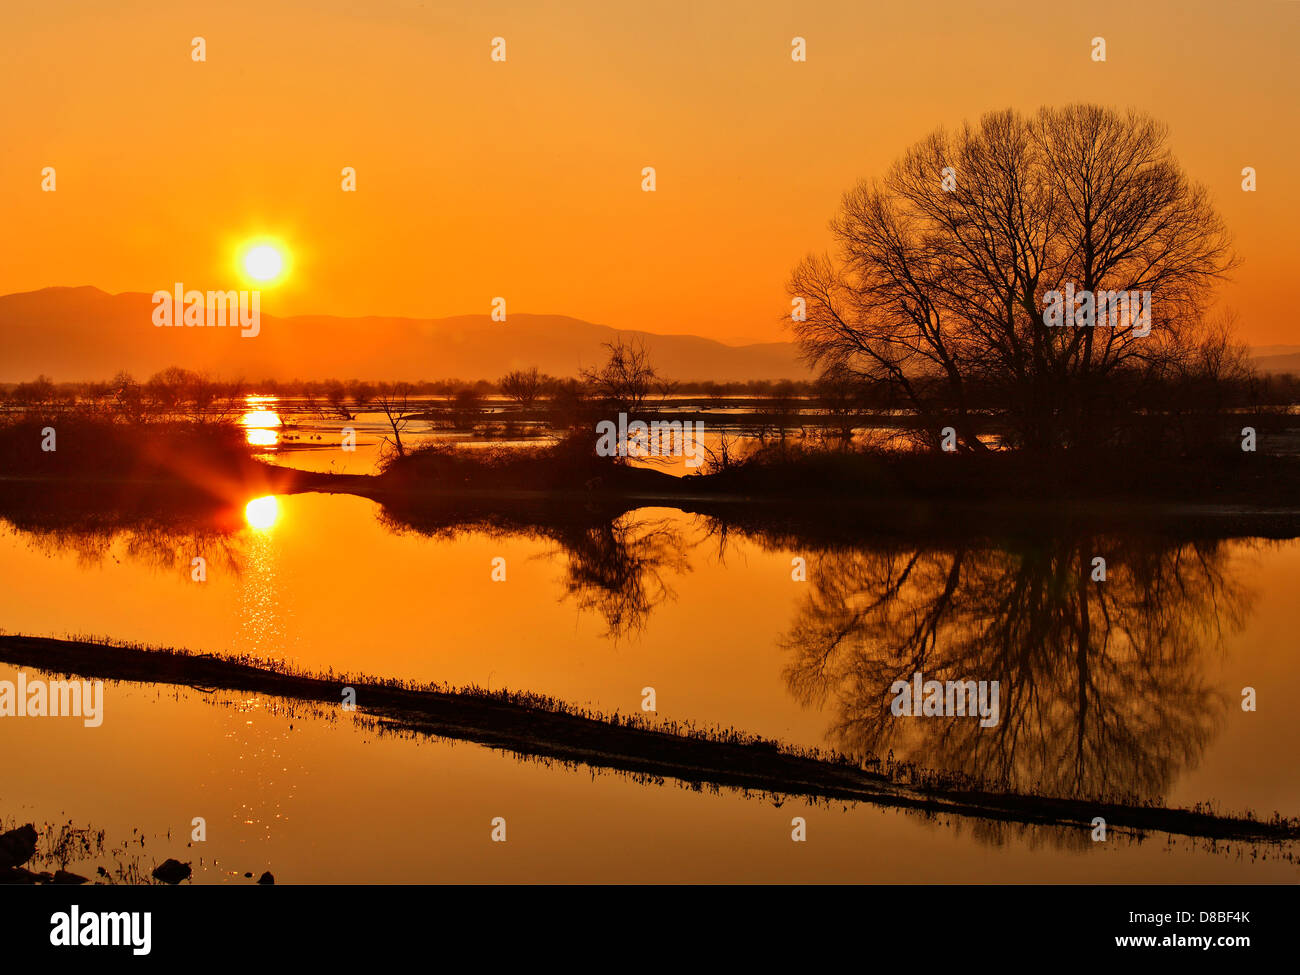 Sunset at lake Kerkini, probably the most important wetland and protected biosphere in whole Greece. Serres, Macedonia. - Stock Image